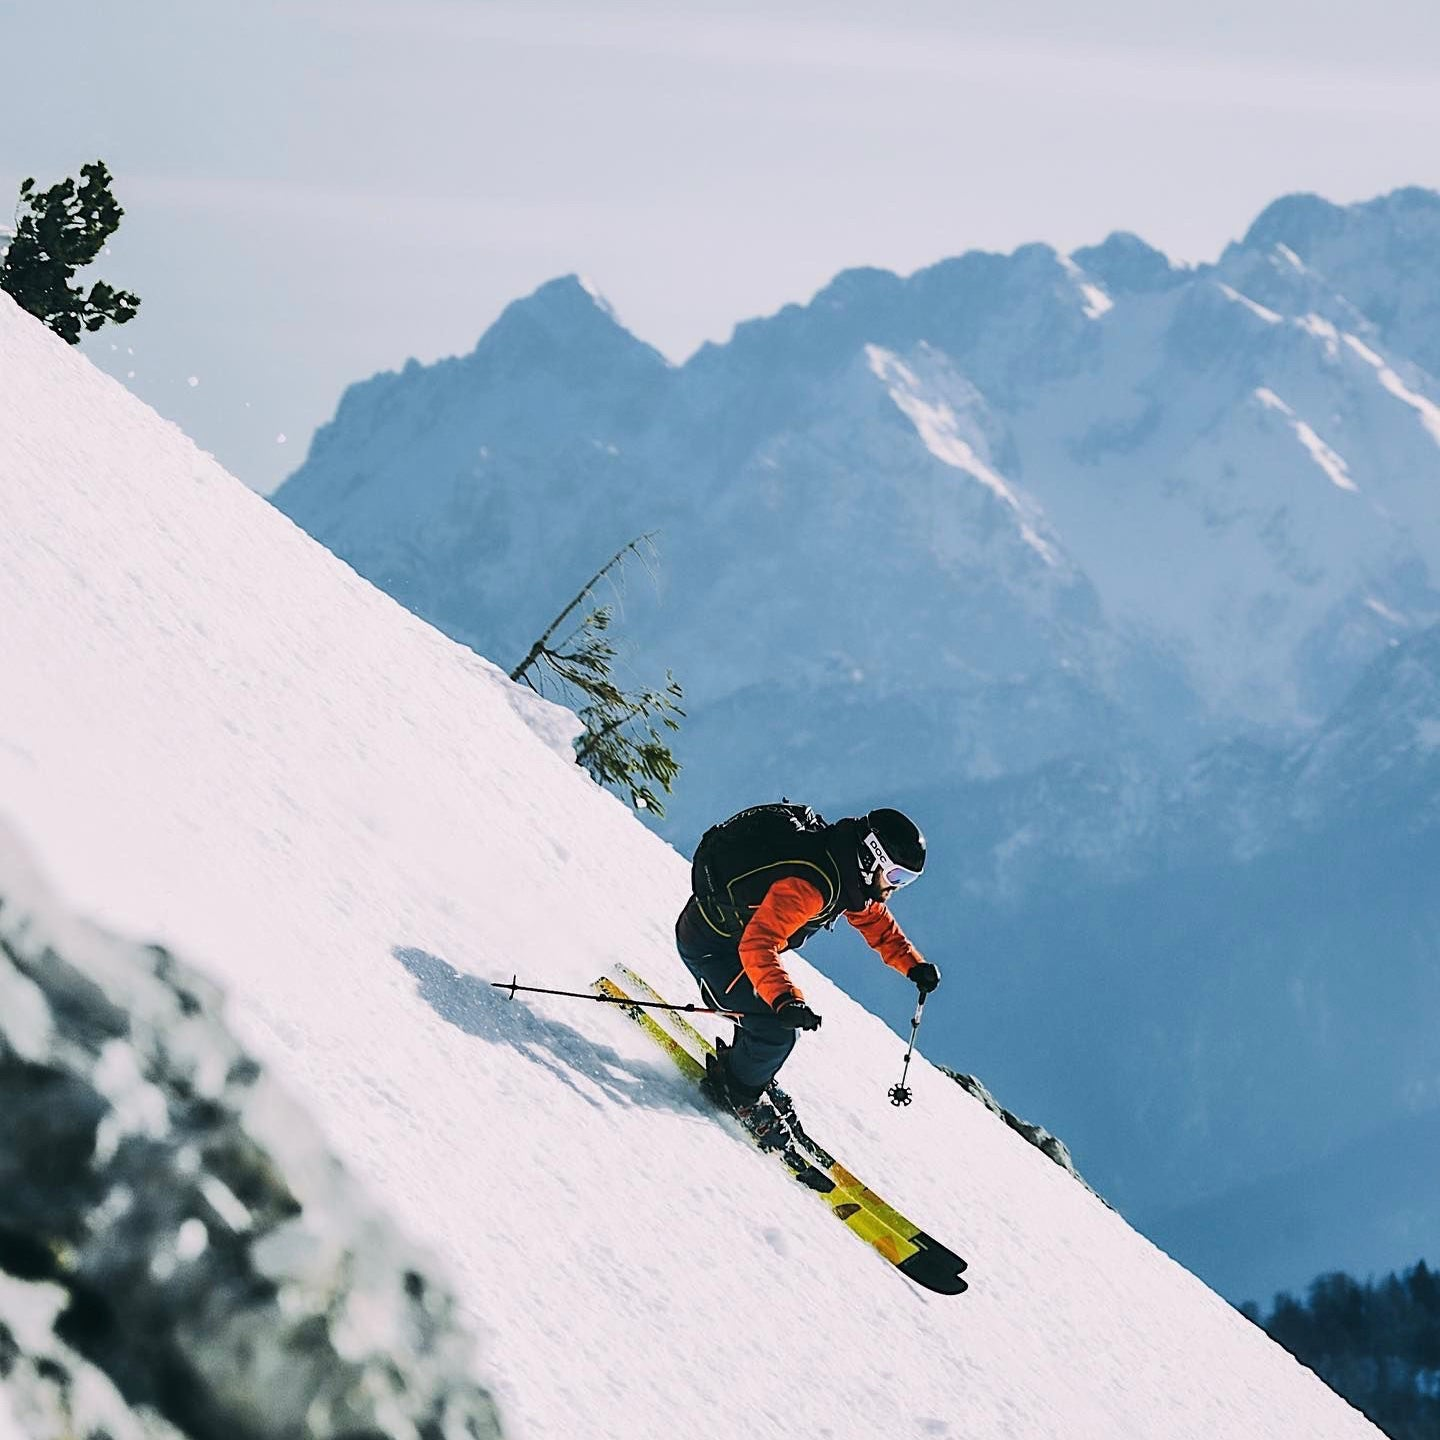 A skier in the backcountry using Hagan Ski Mountaineering gear.